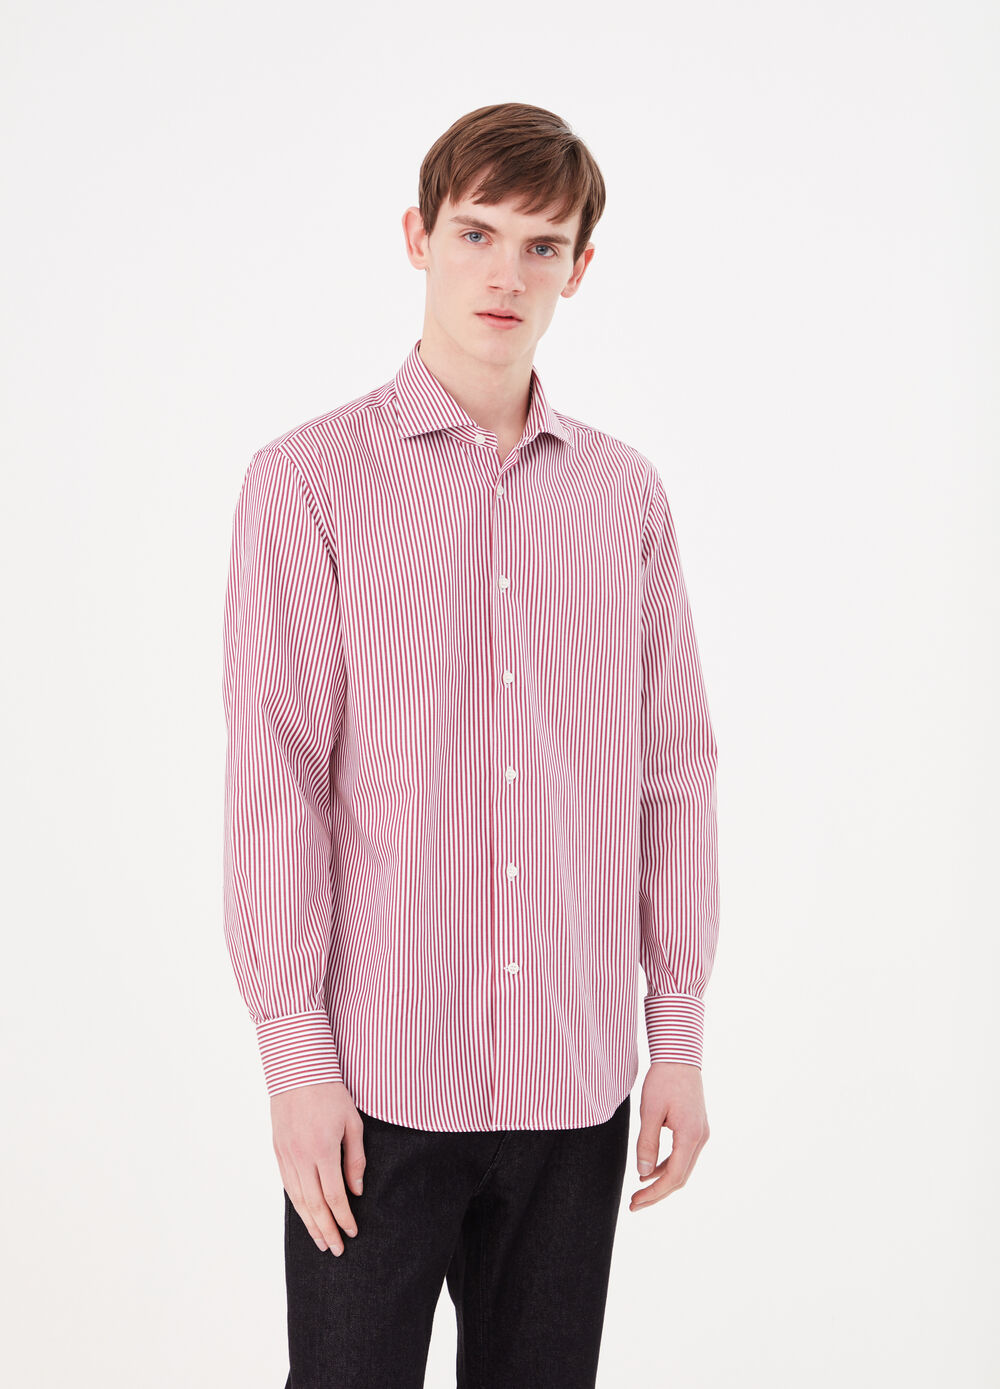 100% cotton twill regular-fit shirt